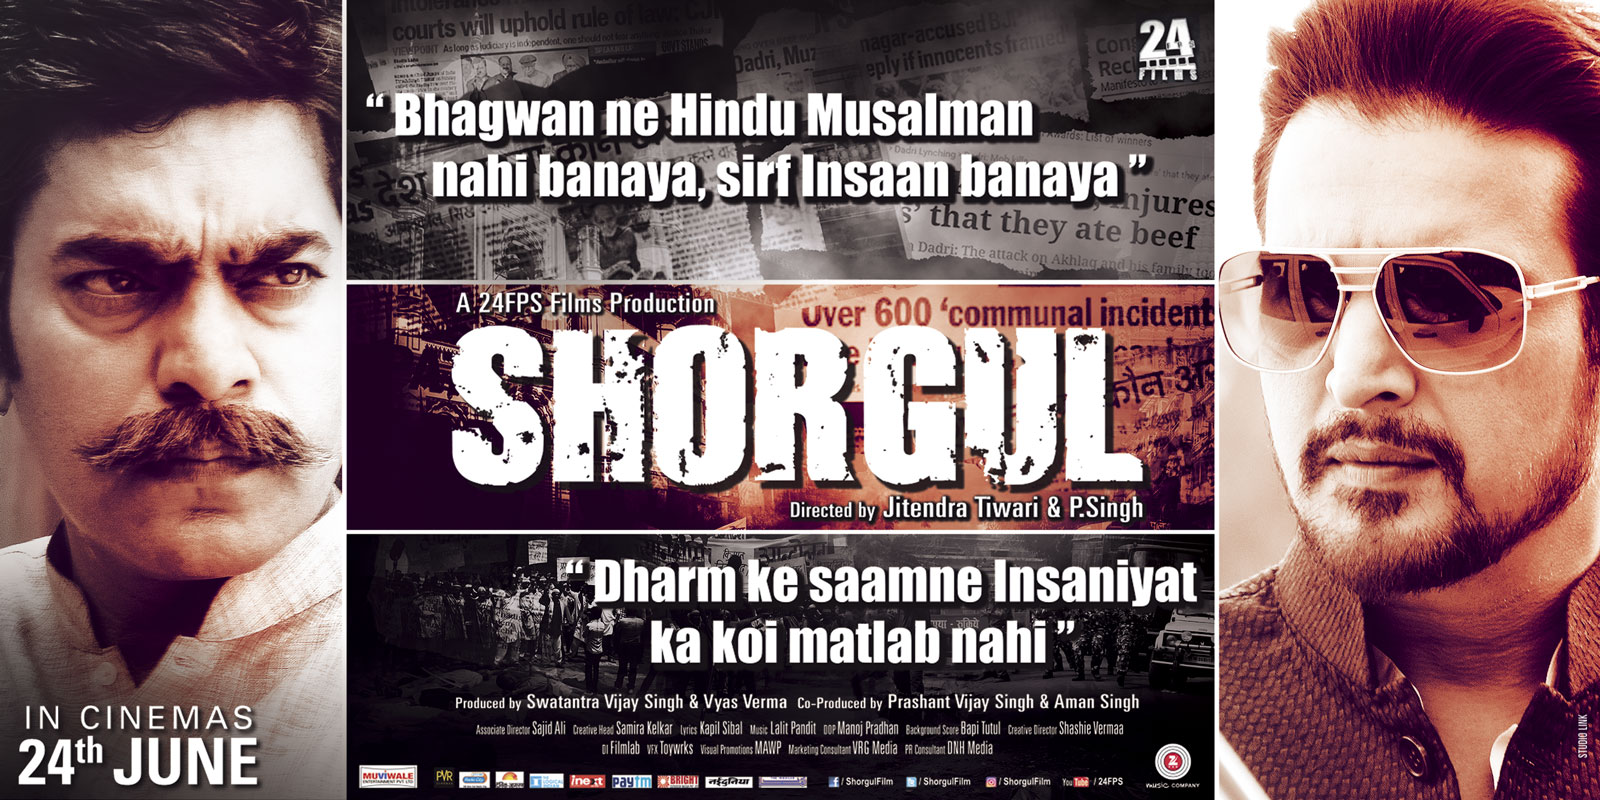 Complete cast and crew of Shorgul  (2016) bollywood hindi movie wiki, poster, Trailer, music list - Jimmy Shergill and Ashutosh Rana, Movie release date 24 June, 2016